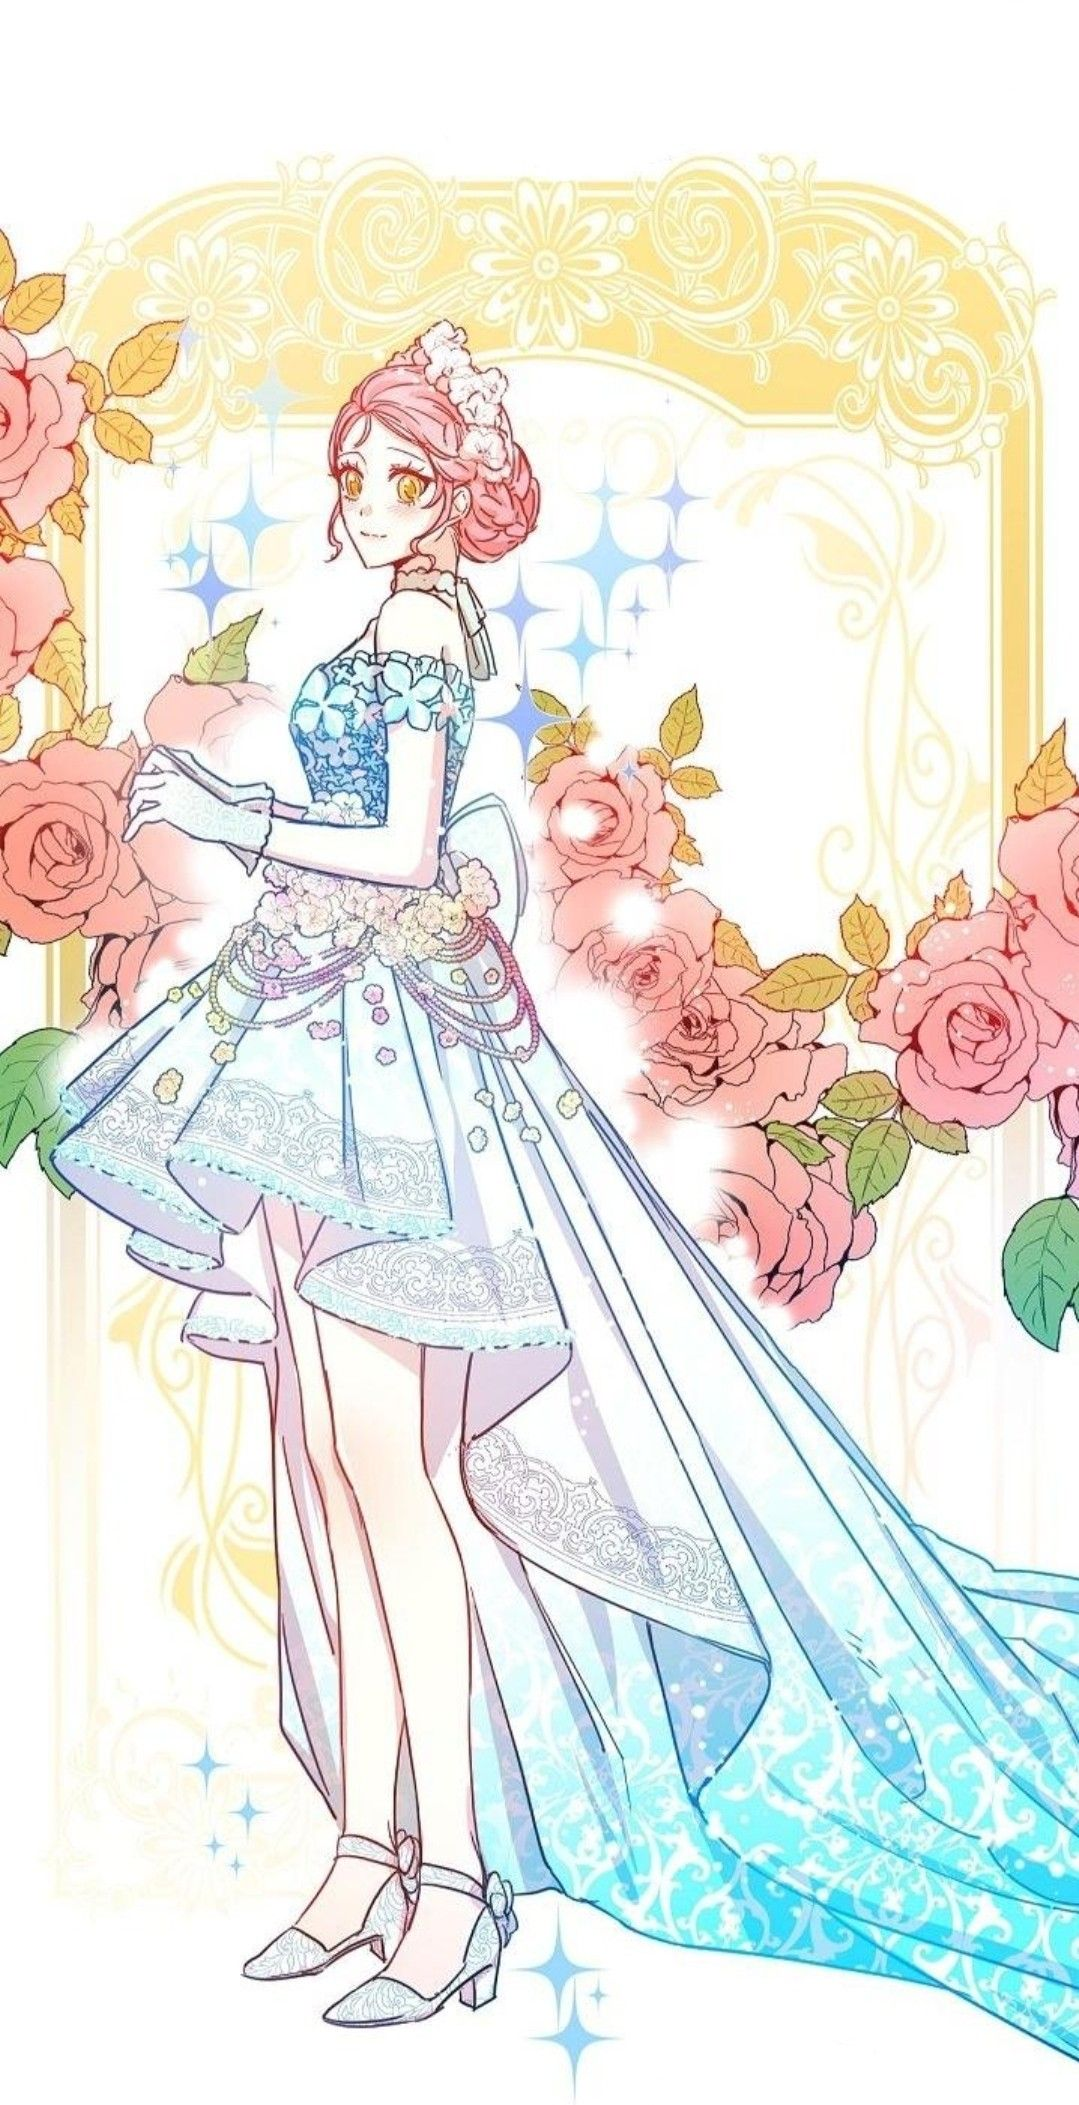 This Is An Obvious Fraudulent Marriage هذا زواج محتال واضح Aesthetic Wallpapers Anime Art